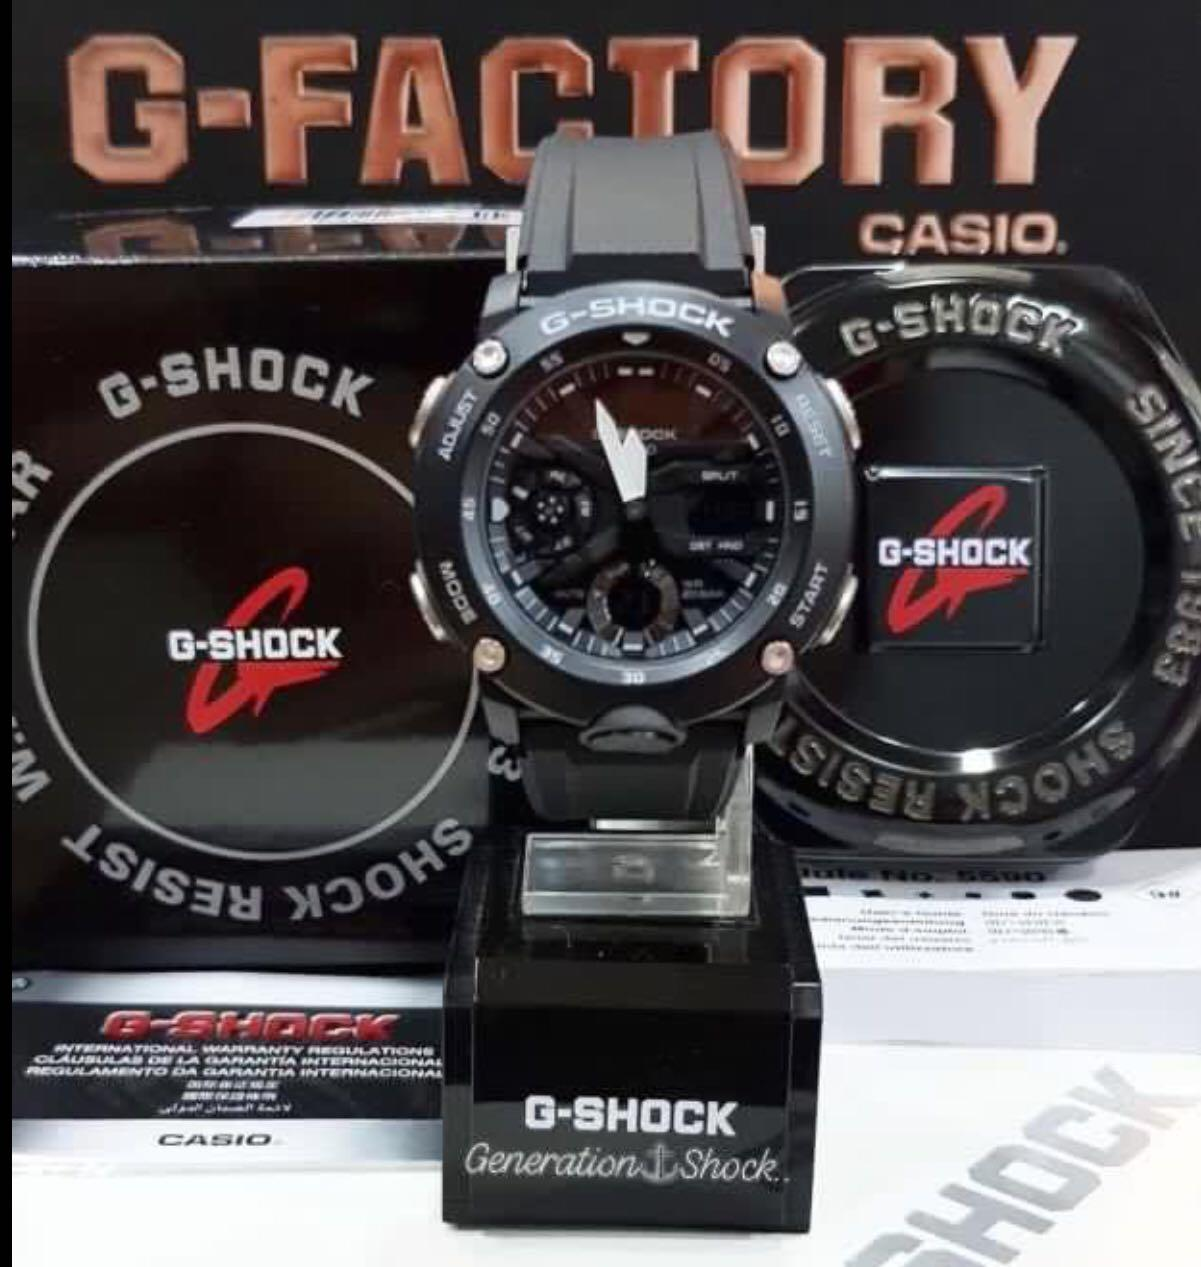 NEW🌟GSHOCK UNISEX DIVER SPORTS WATCH : 100% ORIGINAL AUTHENTIC CASIO G-SHOCK : GA-2000S-1A / GA-2000-1A (FULL STEALTH BLACK)